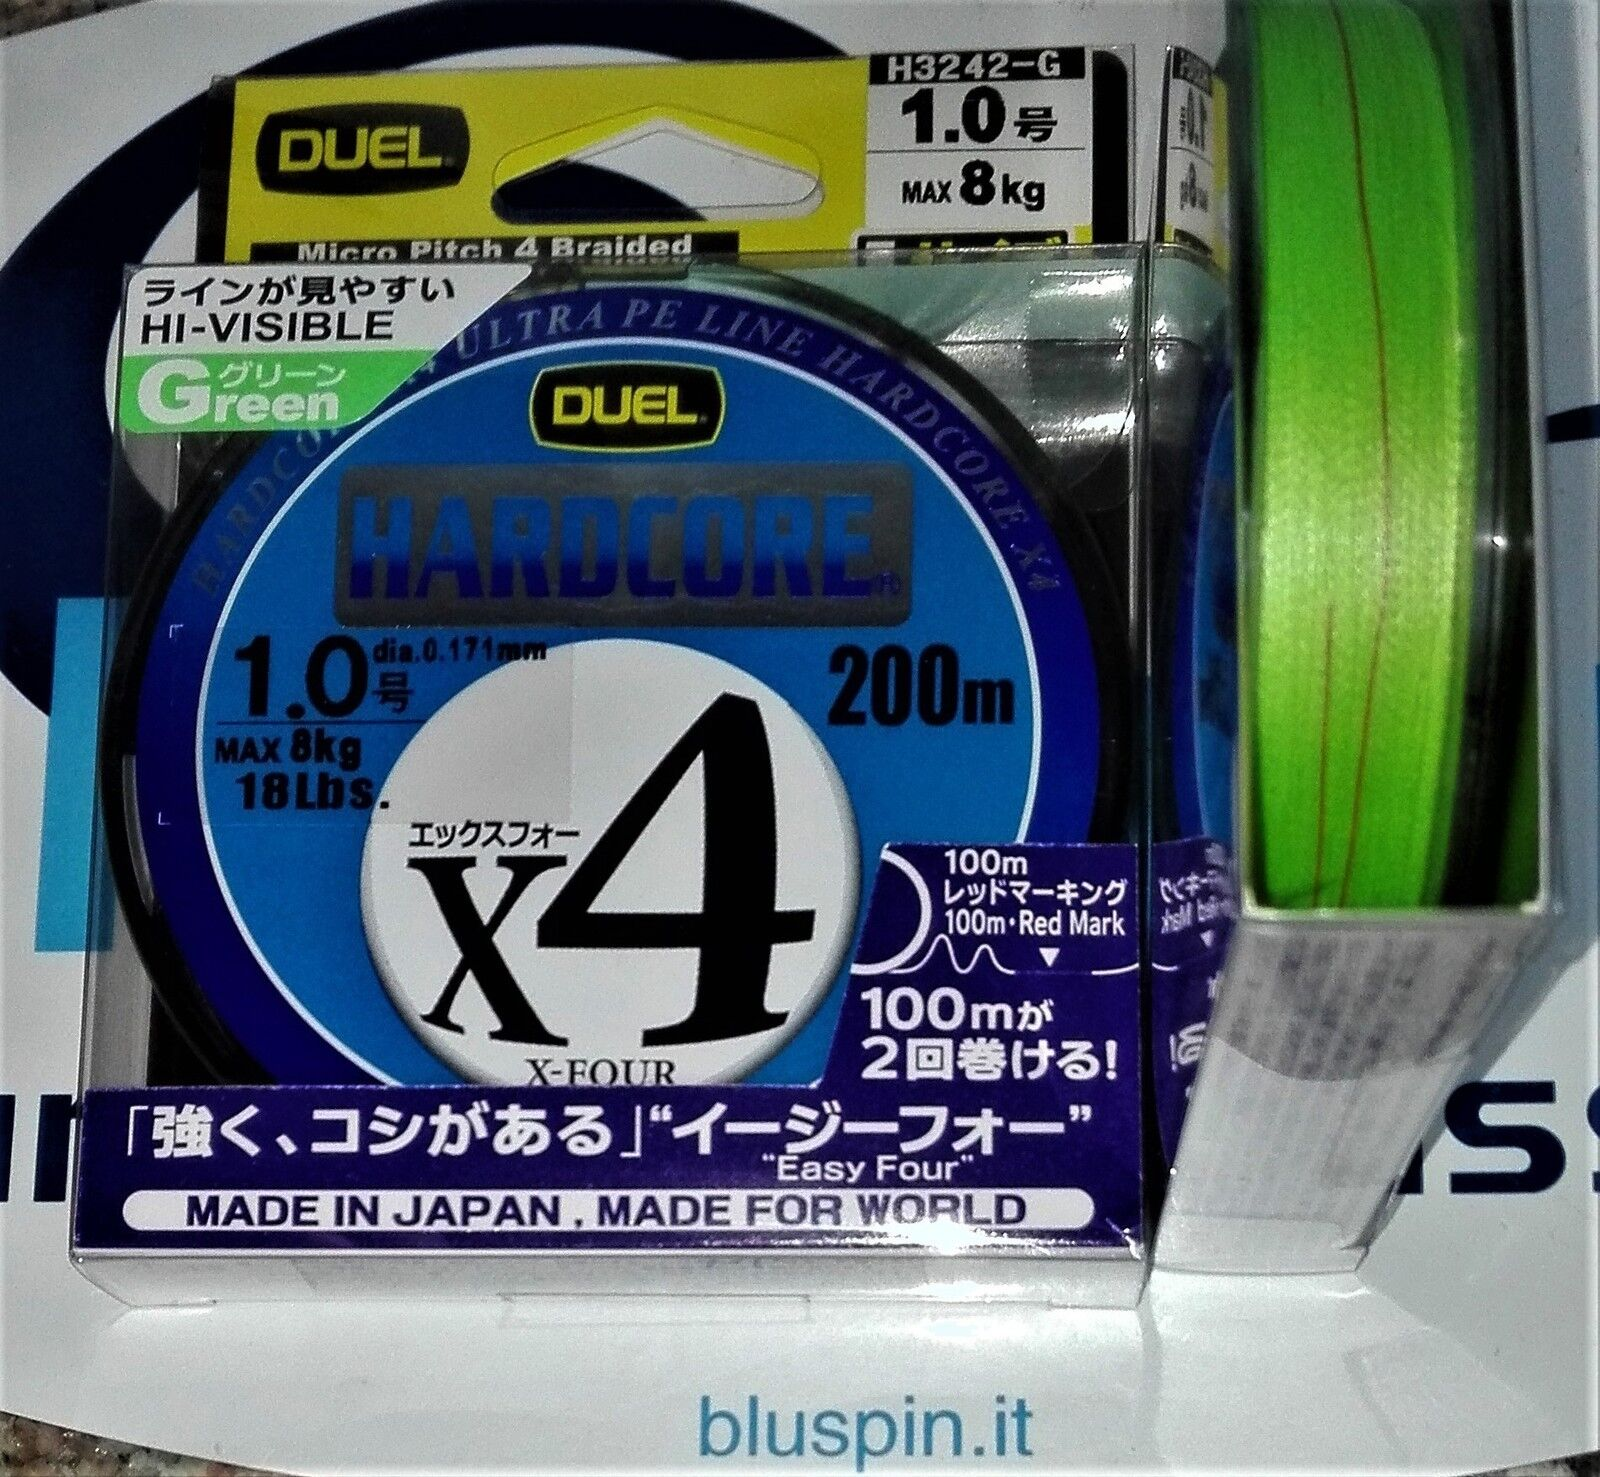 NEW DUEL HARDCORE X4 ULTRA PE LINE 200m 1.0 - 18LB COLOR  GREEN MADE IN JAPAN